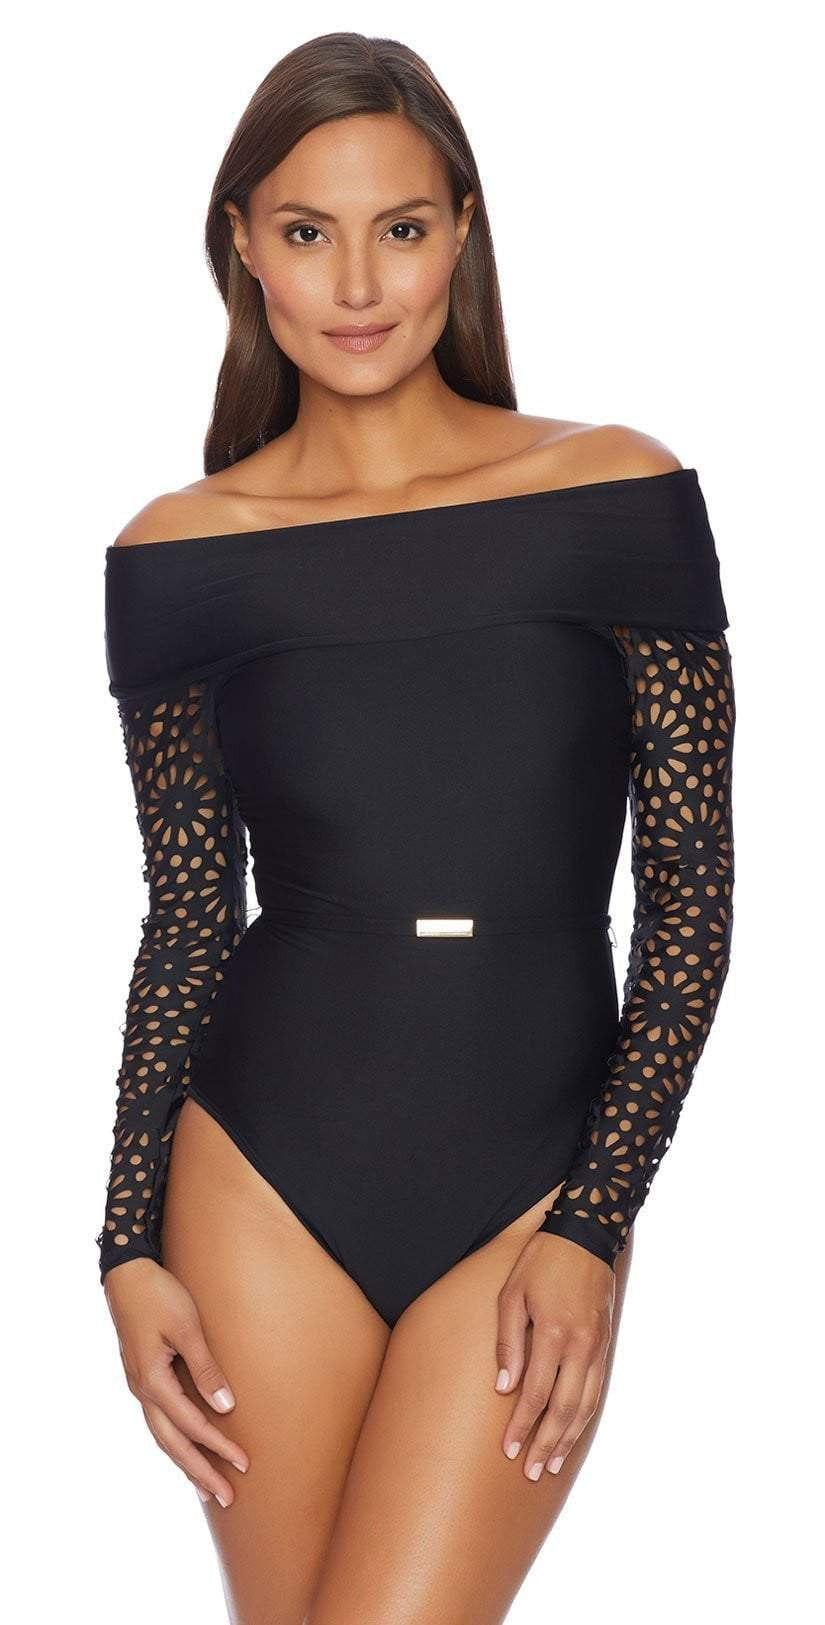 Luxe Aphrodite Long Sleeve One Piece in Black LU13538-BLK: